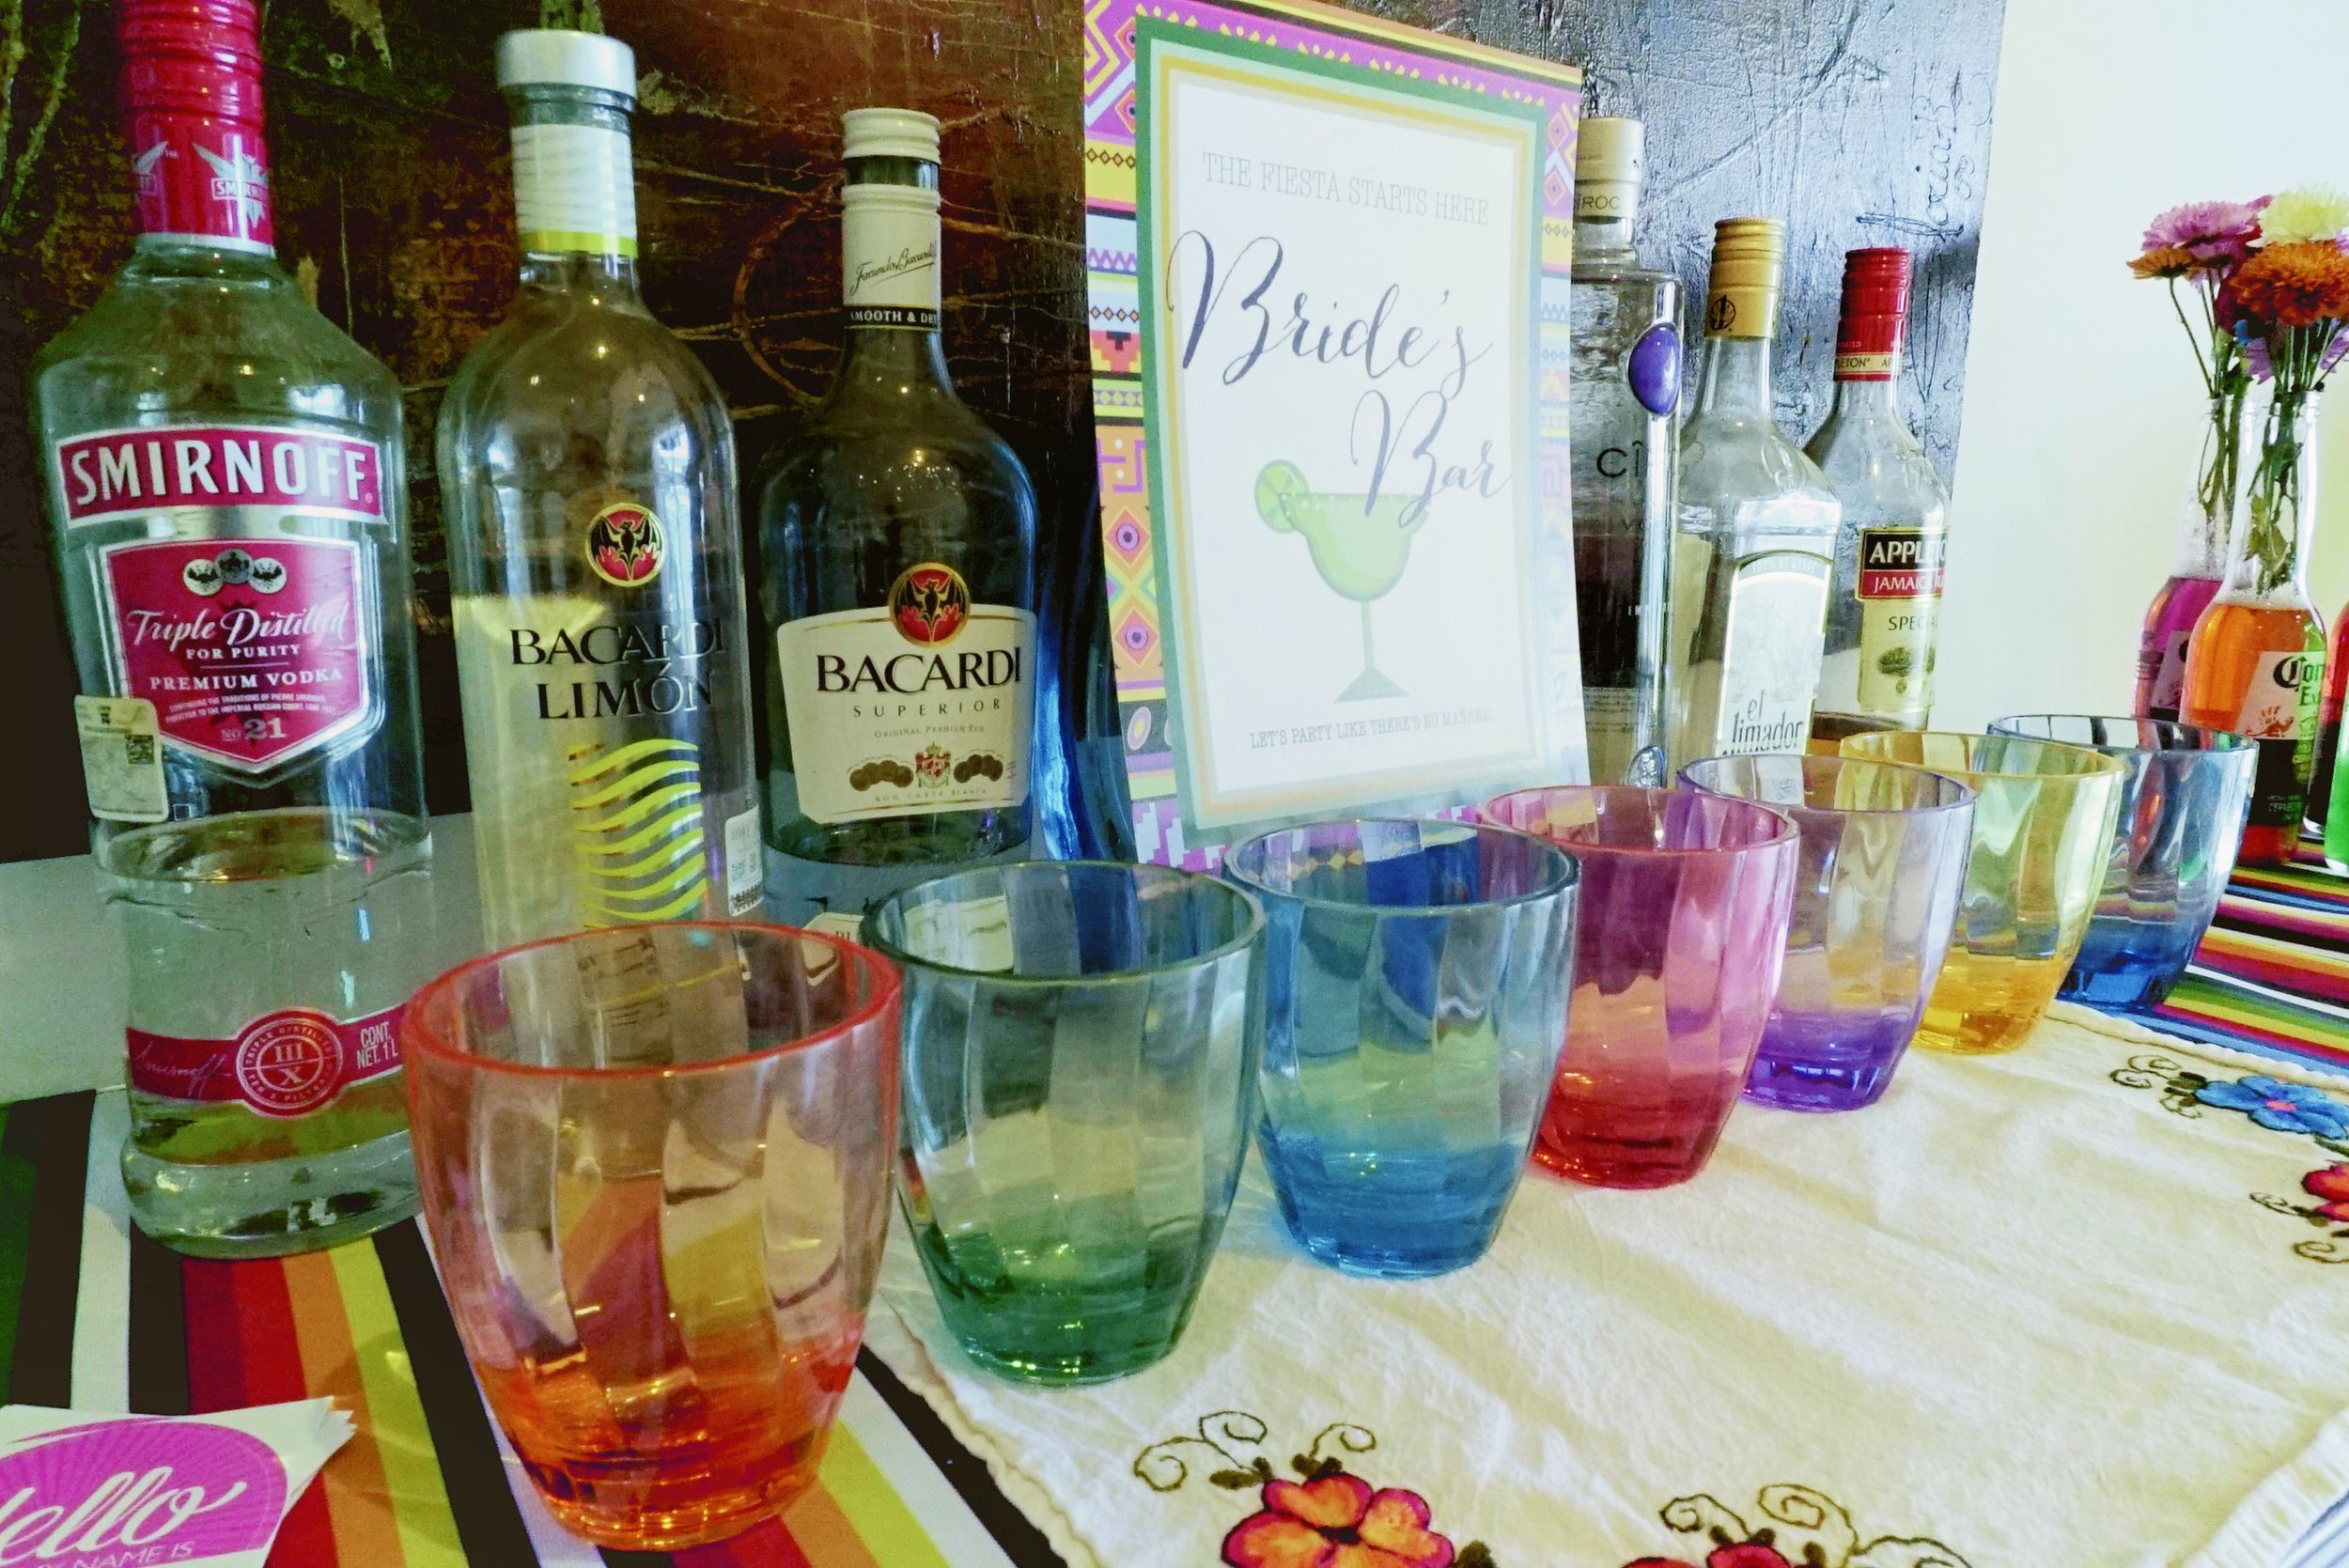 No Bachelorette Party is complete without a Bride's Bar!